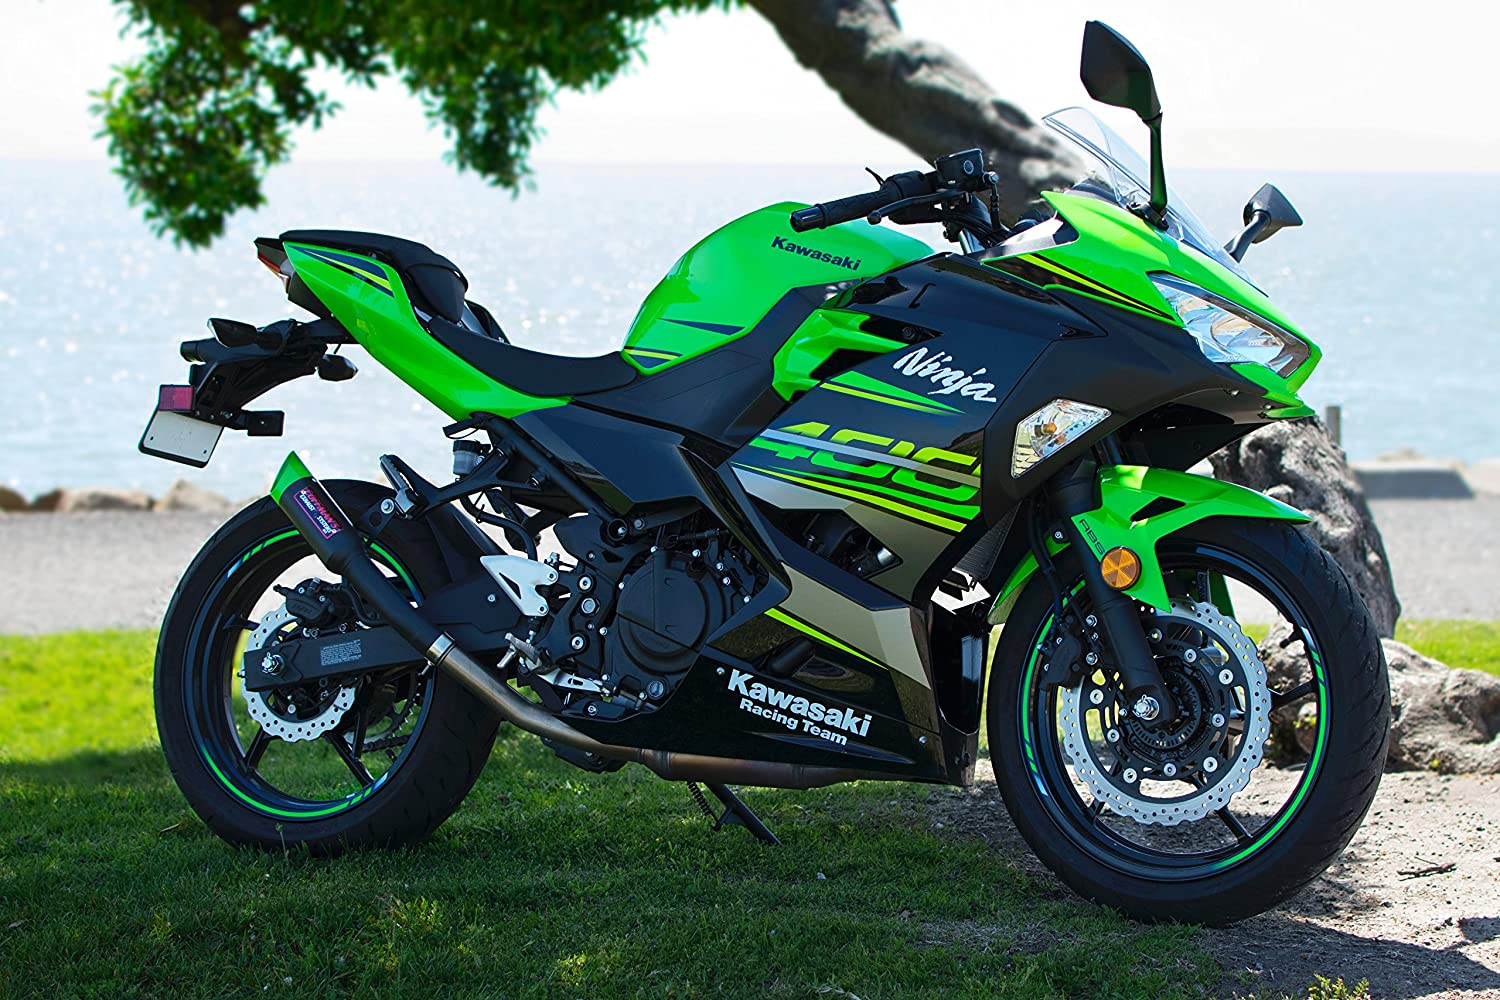 Amazon.com: Coffmans Shorty Escape para Kawasaki Ninja 400 ...